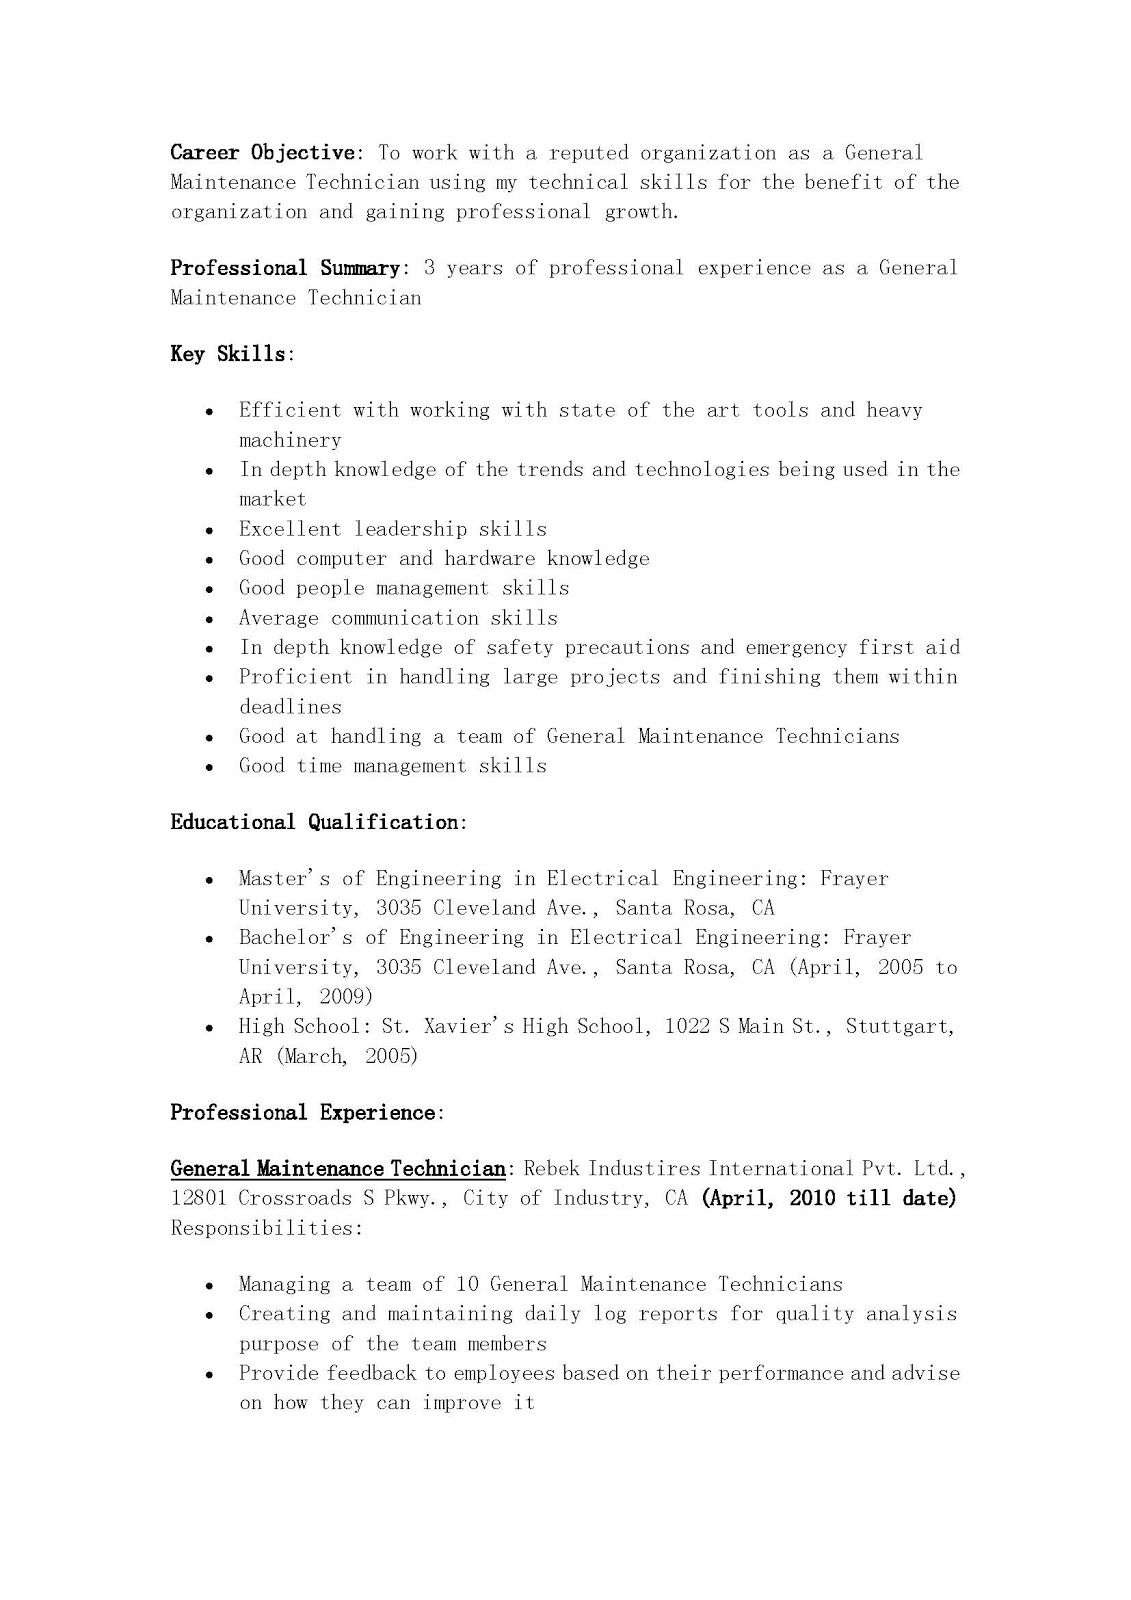 resume samples  general maintenance technician resume